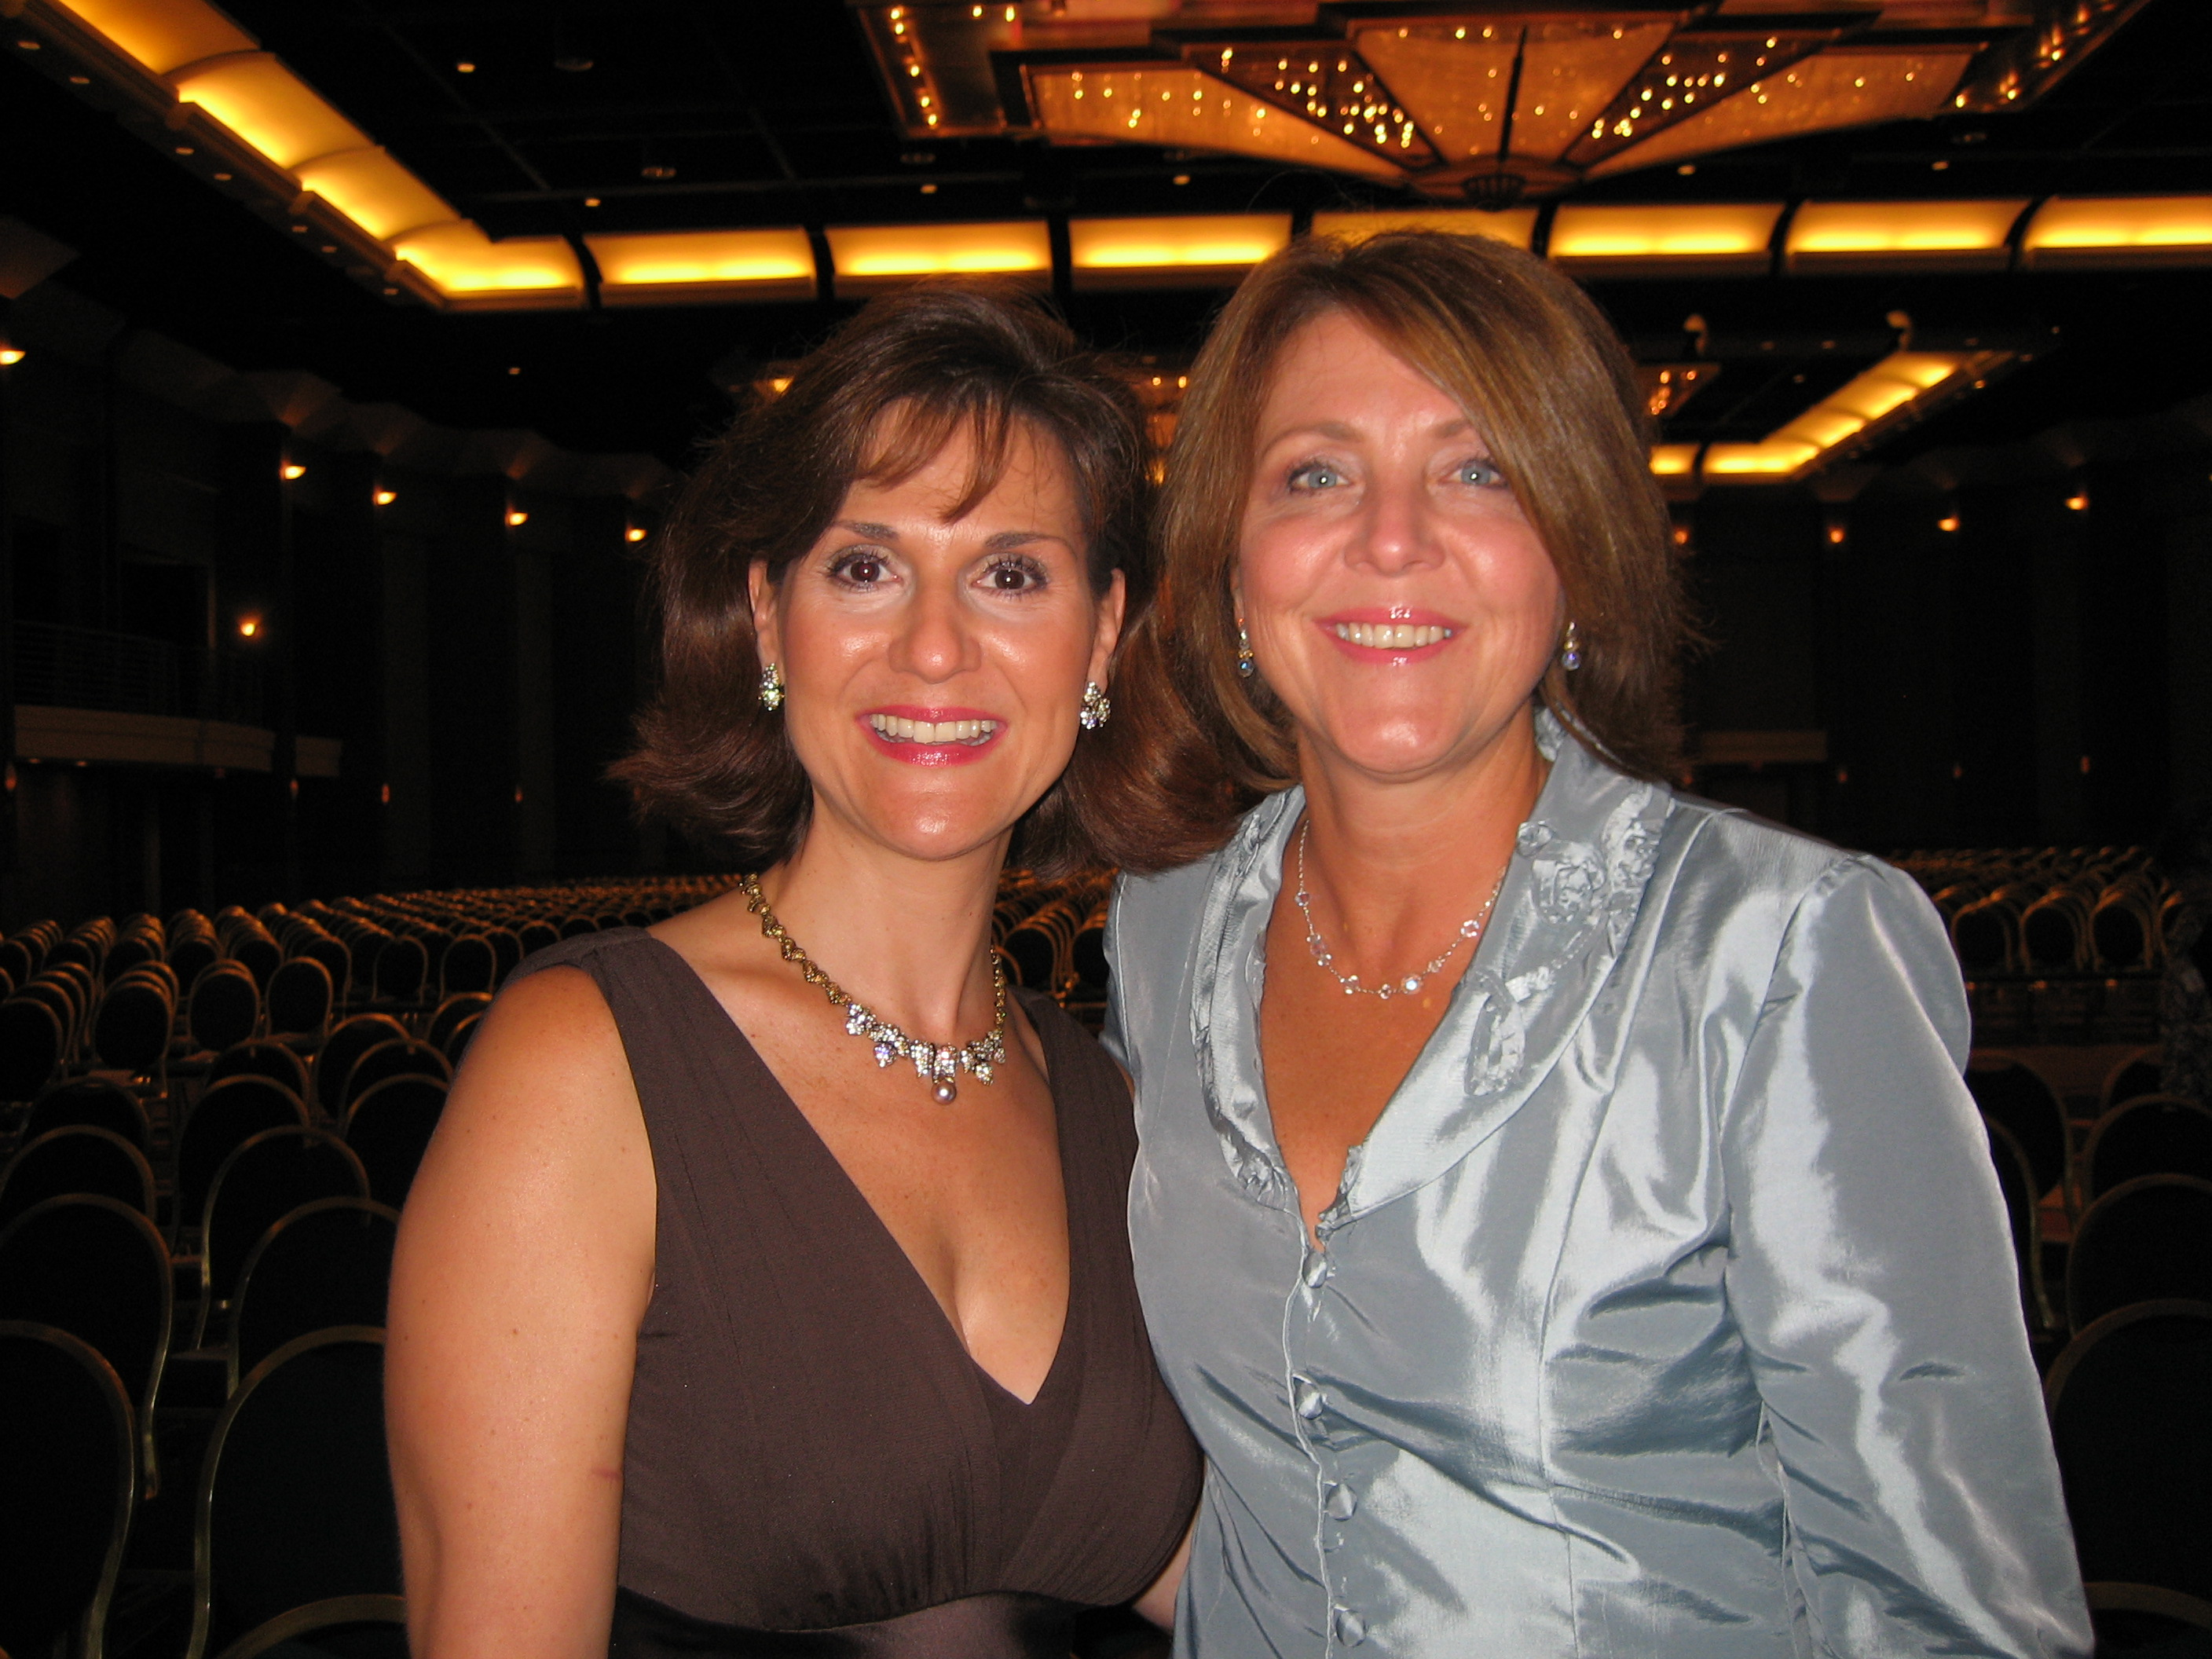 Susan and Karen White at RWA 2007